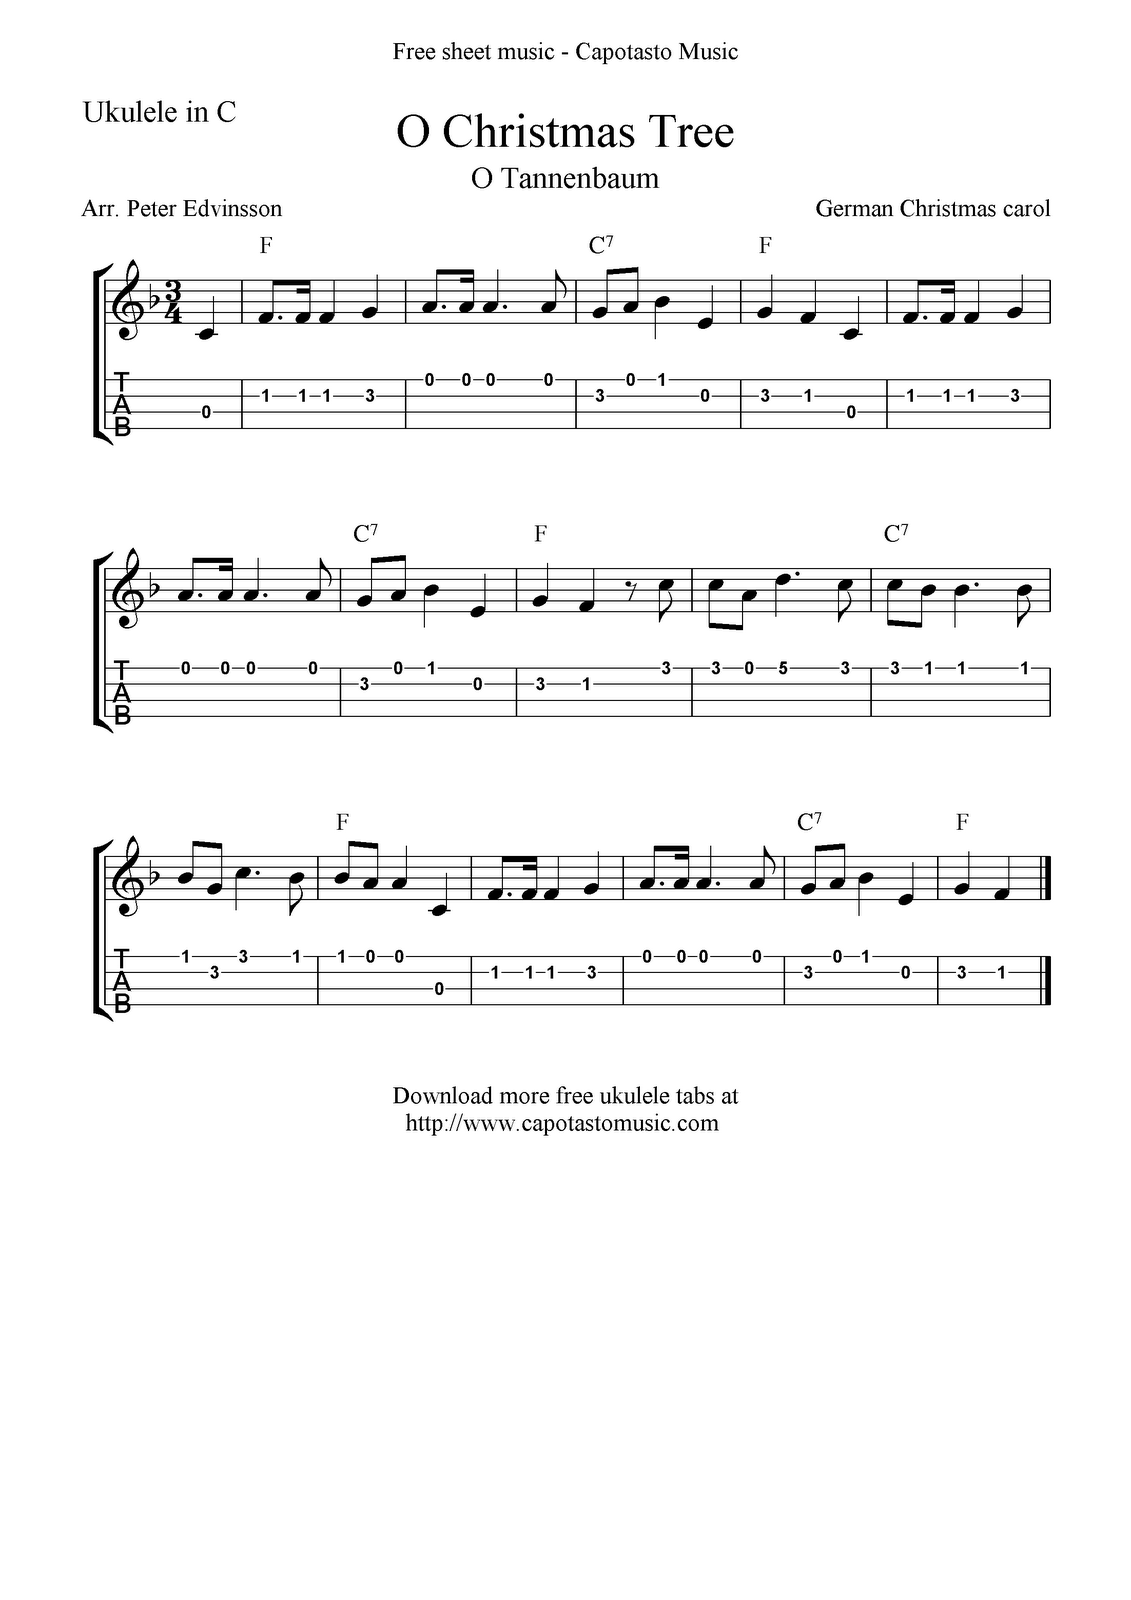 Lied Oh Tannenbaum Text.O Christmas Tree O Tannenbaum Ukulele Sheet Music Free